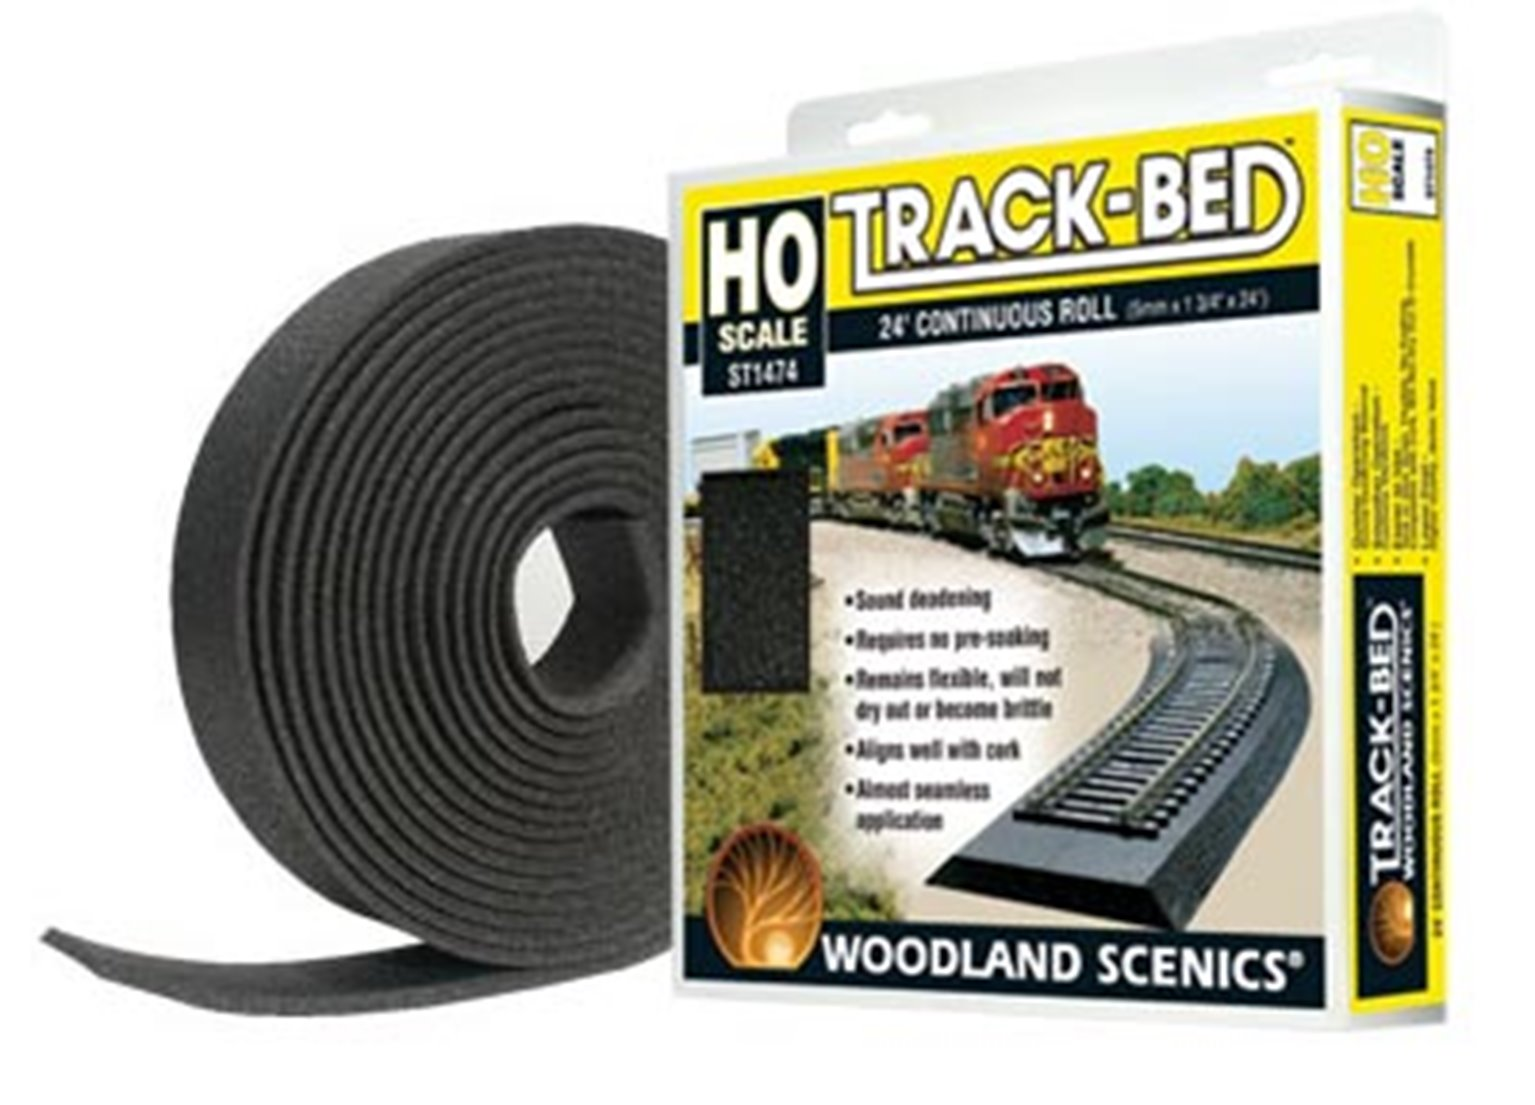 Trackbed Roll 24ft.